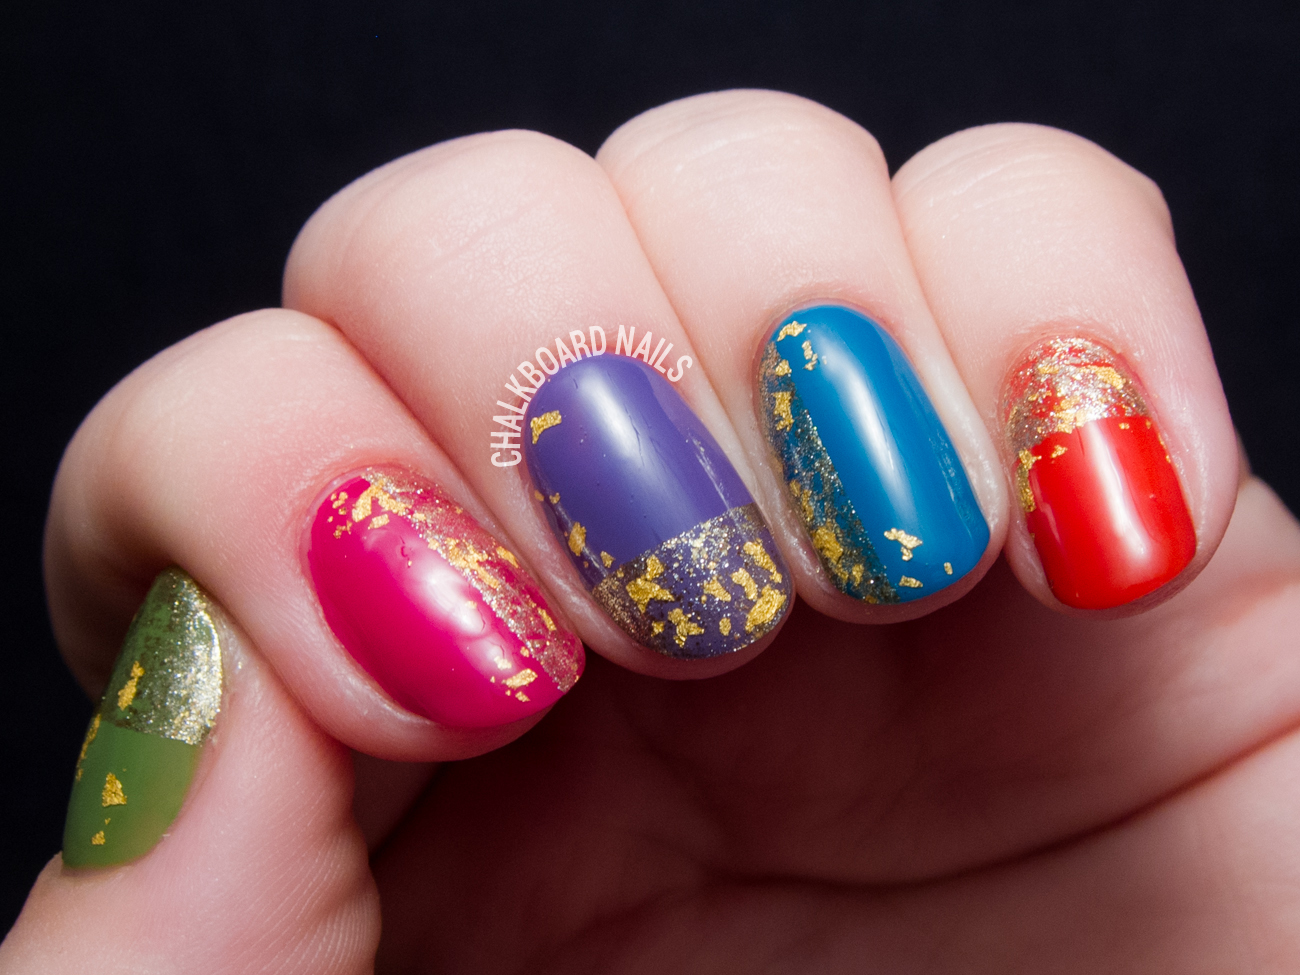 Gold and Jewels by @chalkboardnails